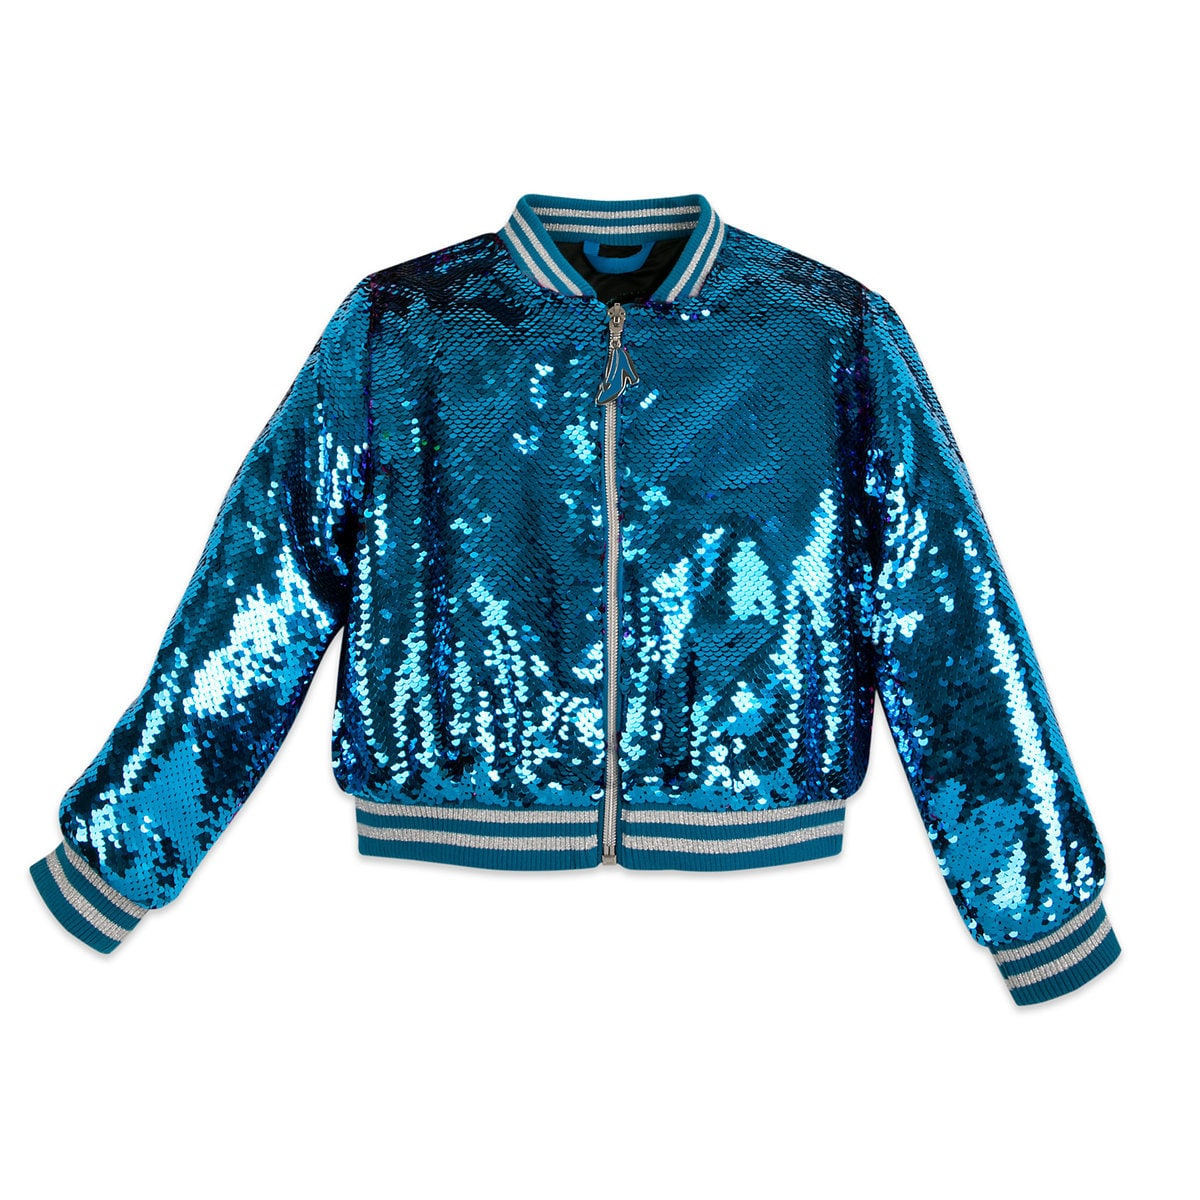 9aead0bd3021 Product Image of Cinderella Reversible Sequin Bomber Jacket for Girls # 1